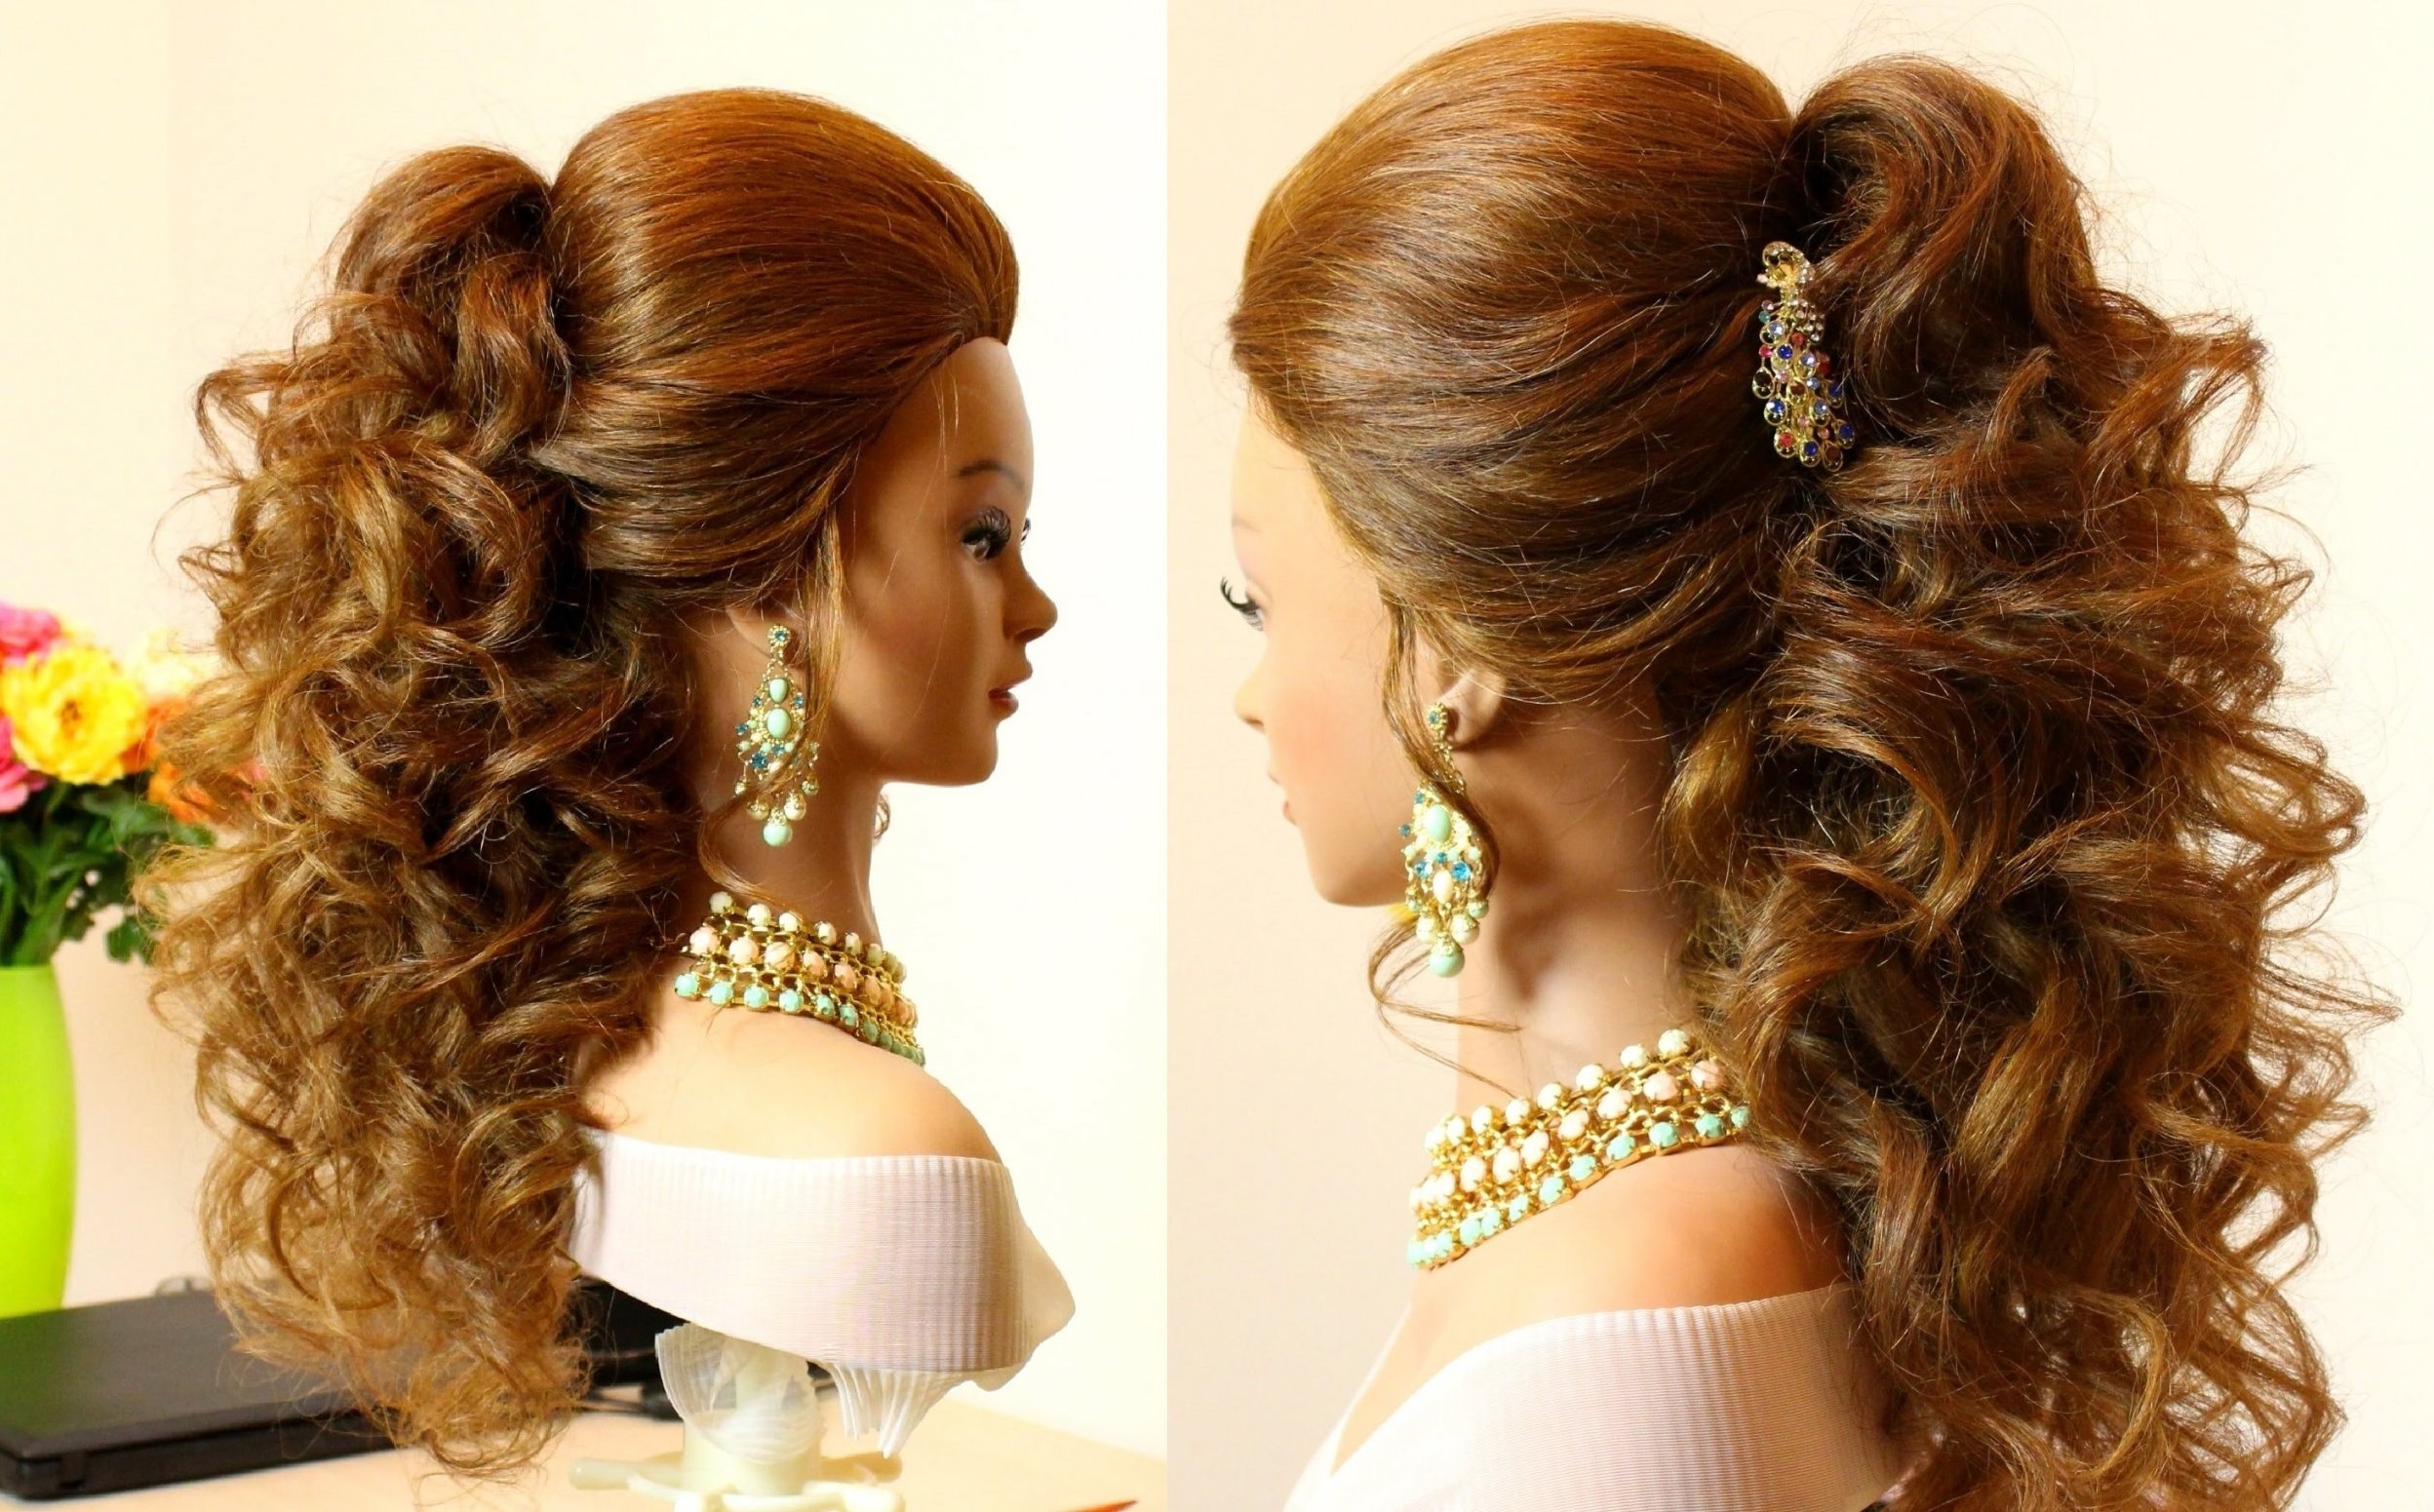 15 Inspirations Of Wedding Updo Hairstyles For Long Curly Hair